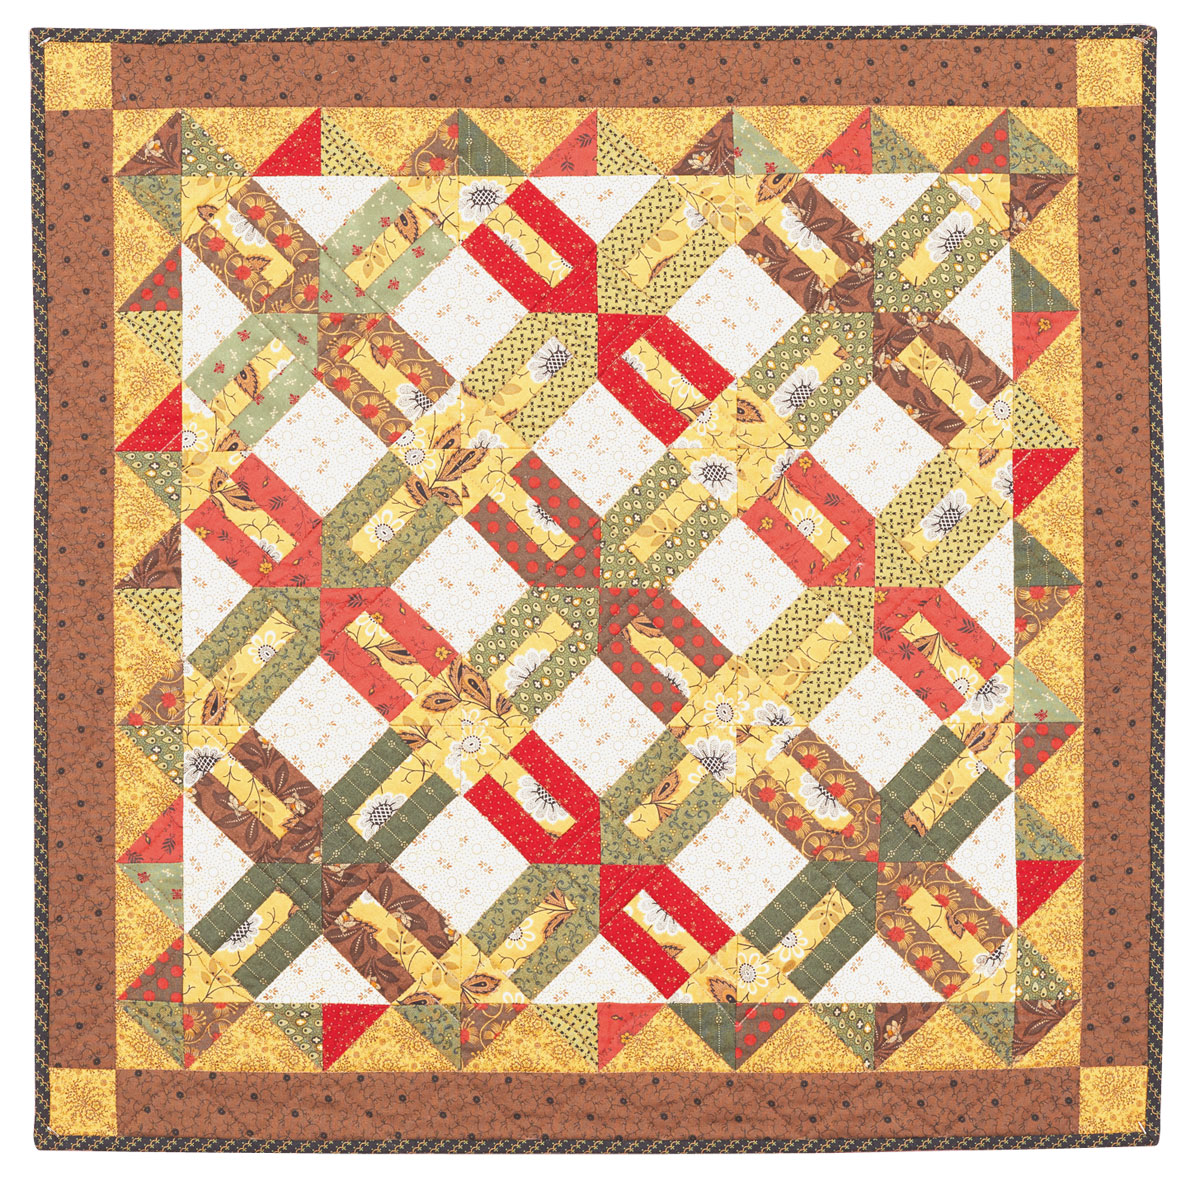 Gold Rush Quilt - Fons & Porter - The Quilting Company